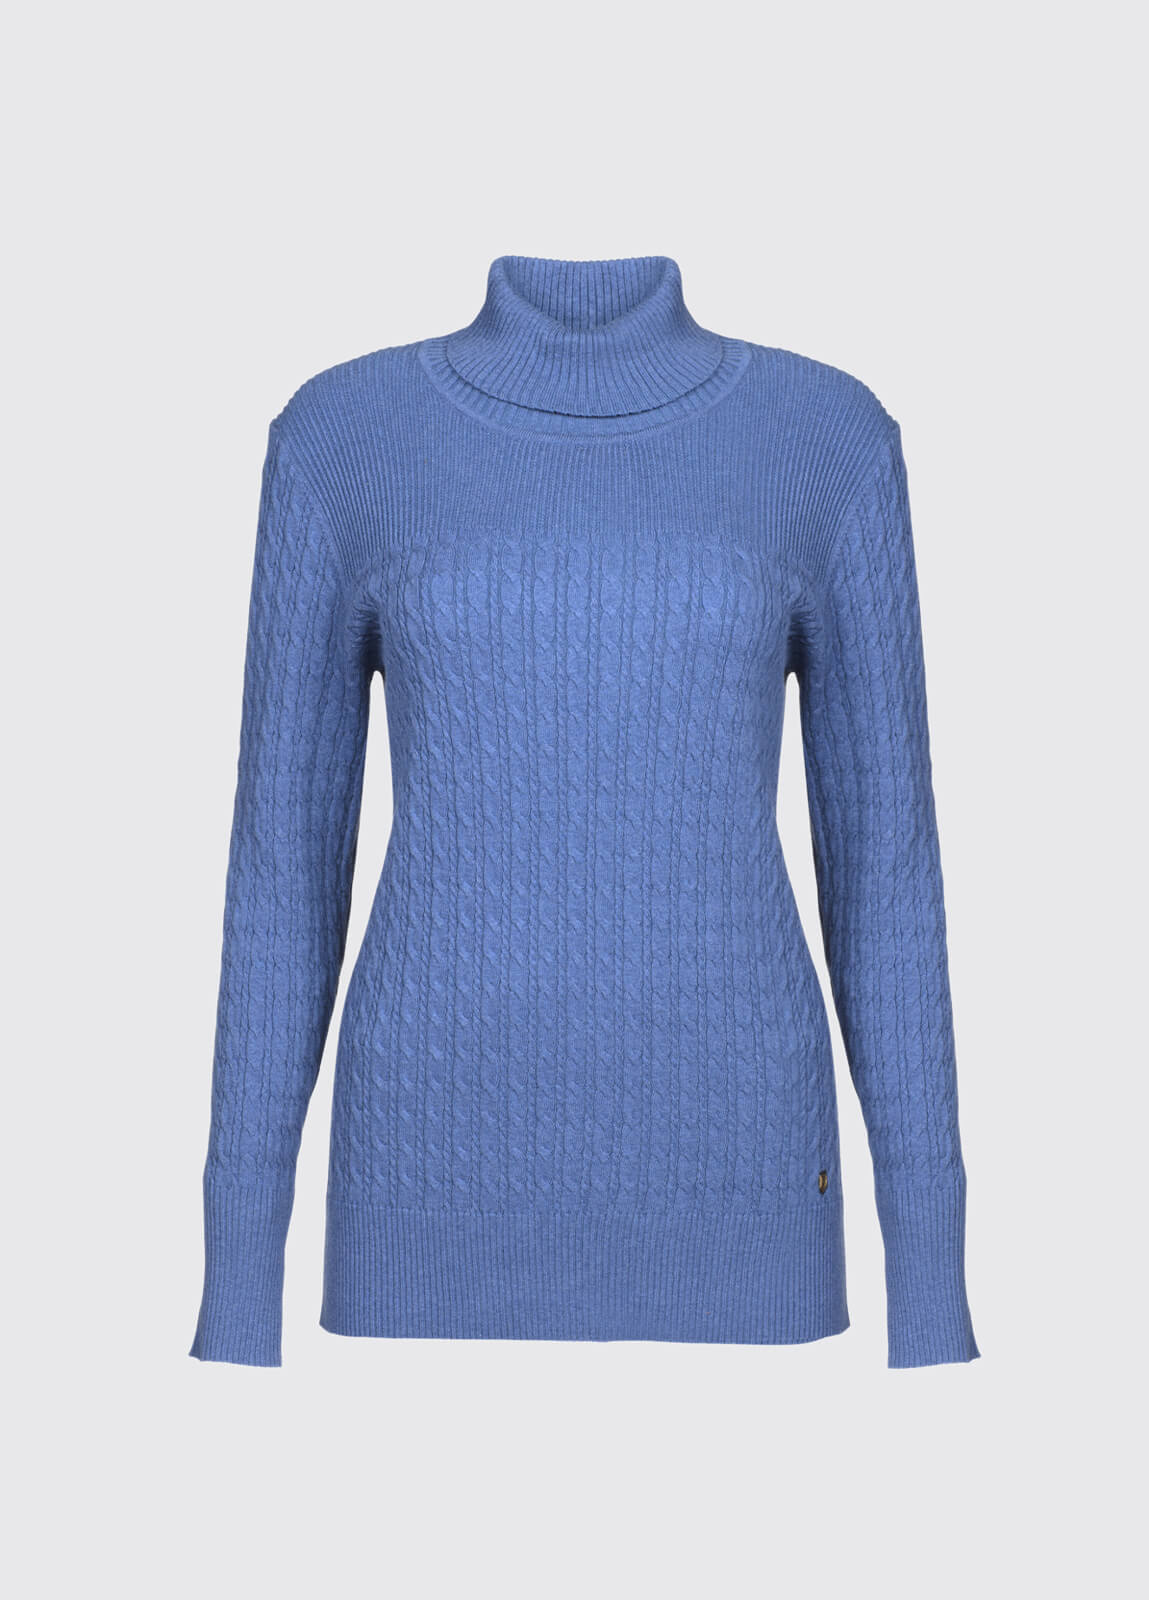 Boylan Polo Neck Sweater - Denim